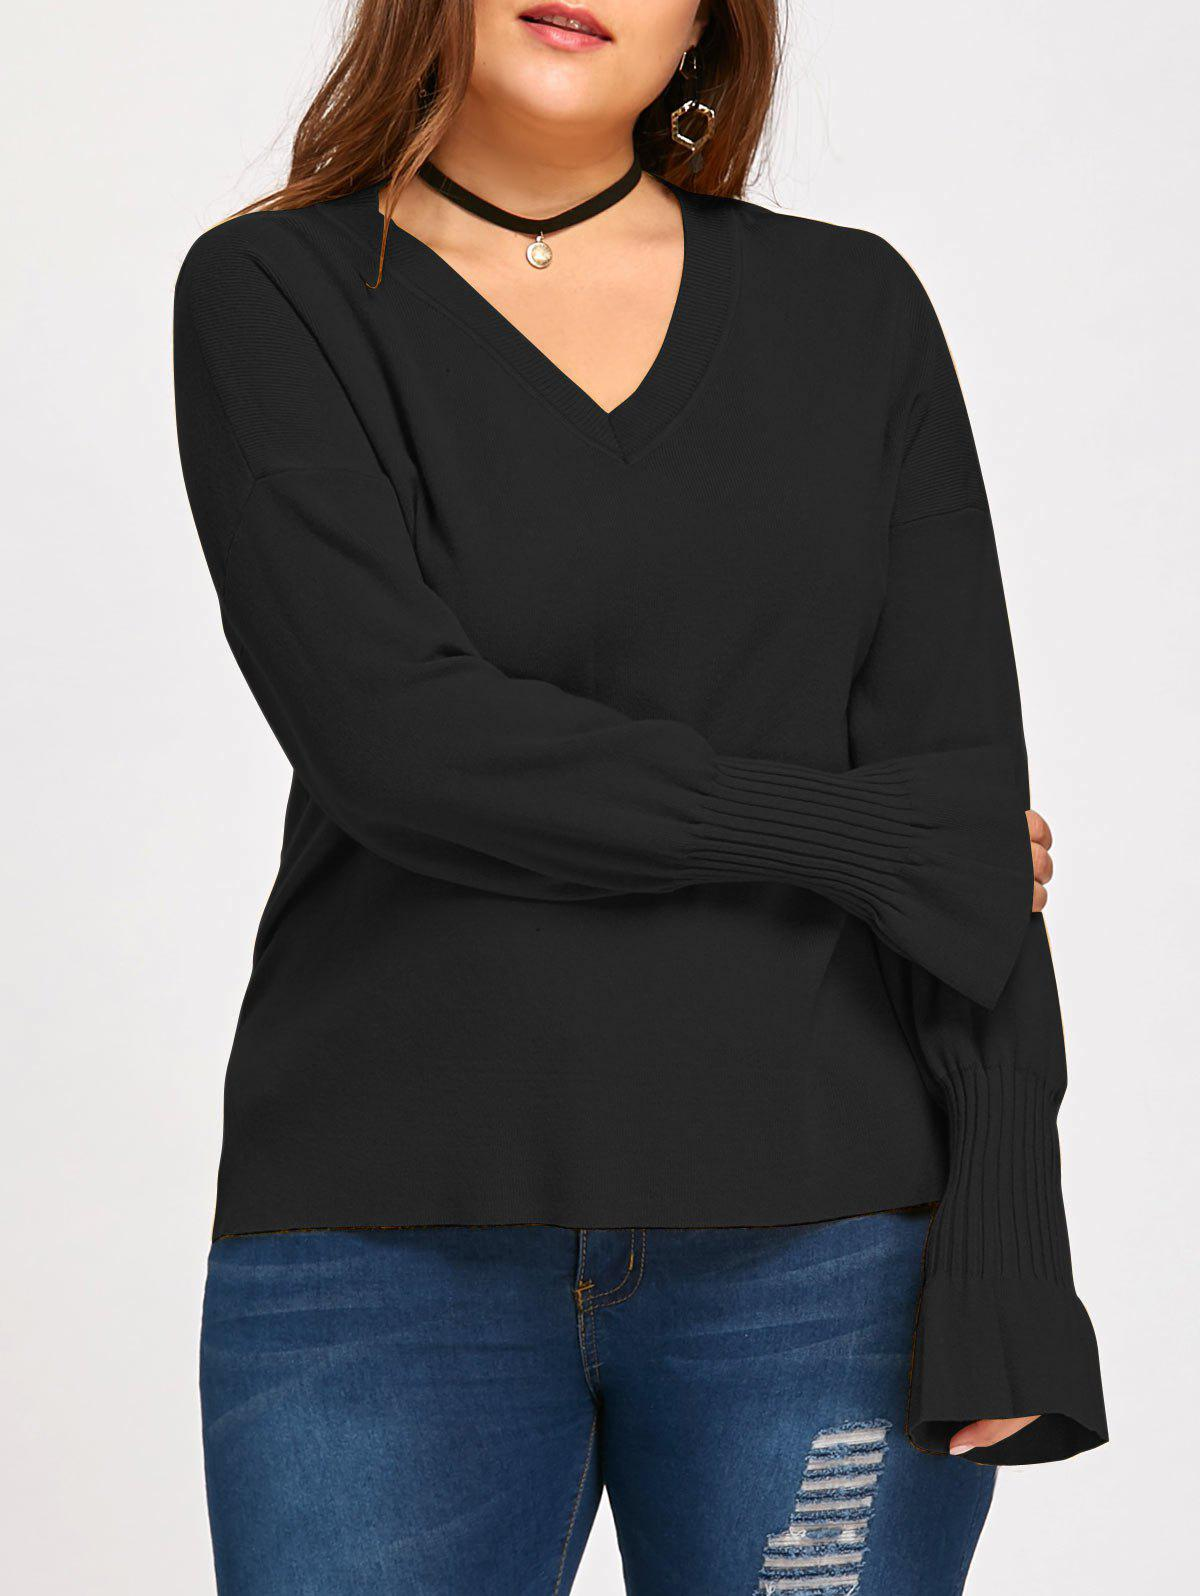 Flounce Lantern Sleeve Plus Size V Neck Sweater - BLACK 3XL